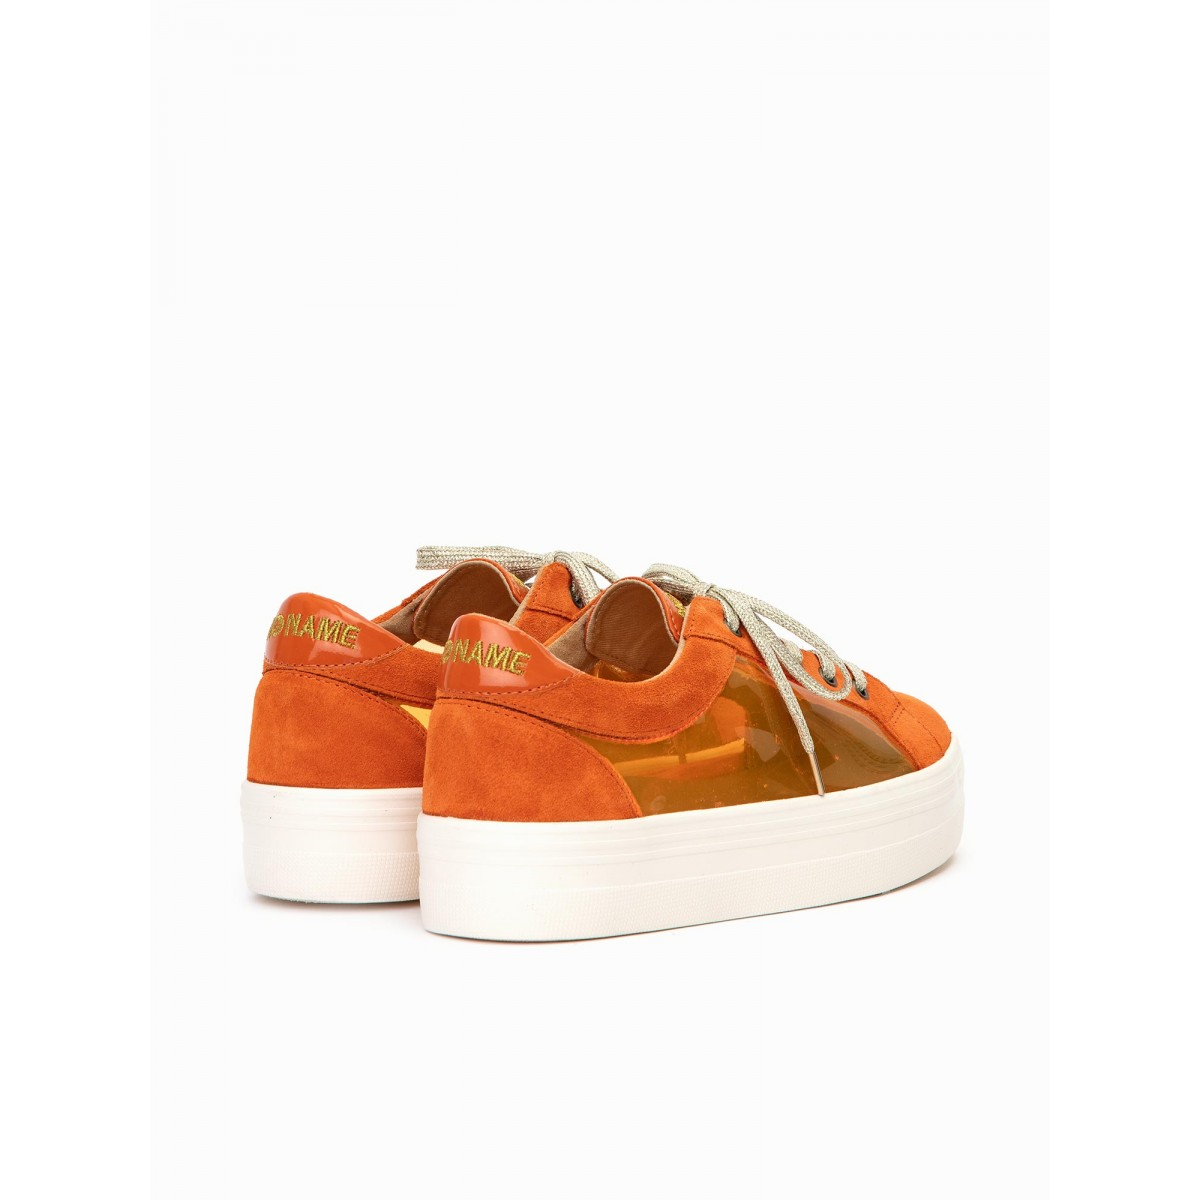 No Name PLATO BRIDGE - SUEDE/PLEXI - ORANGE/ORANGE